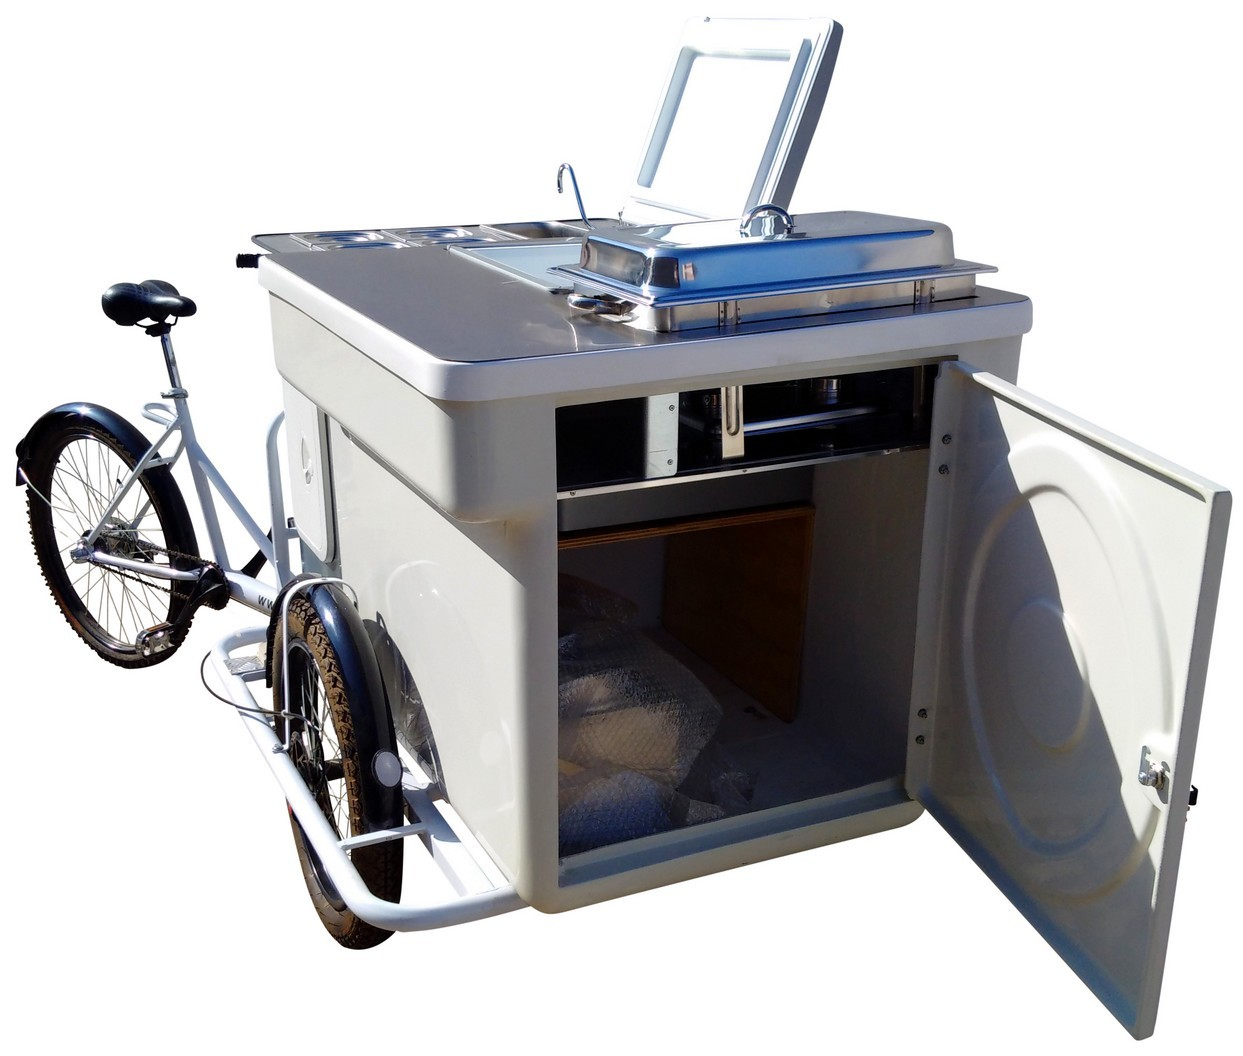 HOT_DOG_BIKE_BANCO_VTR_CATERING_7